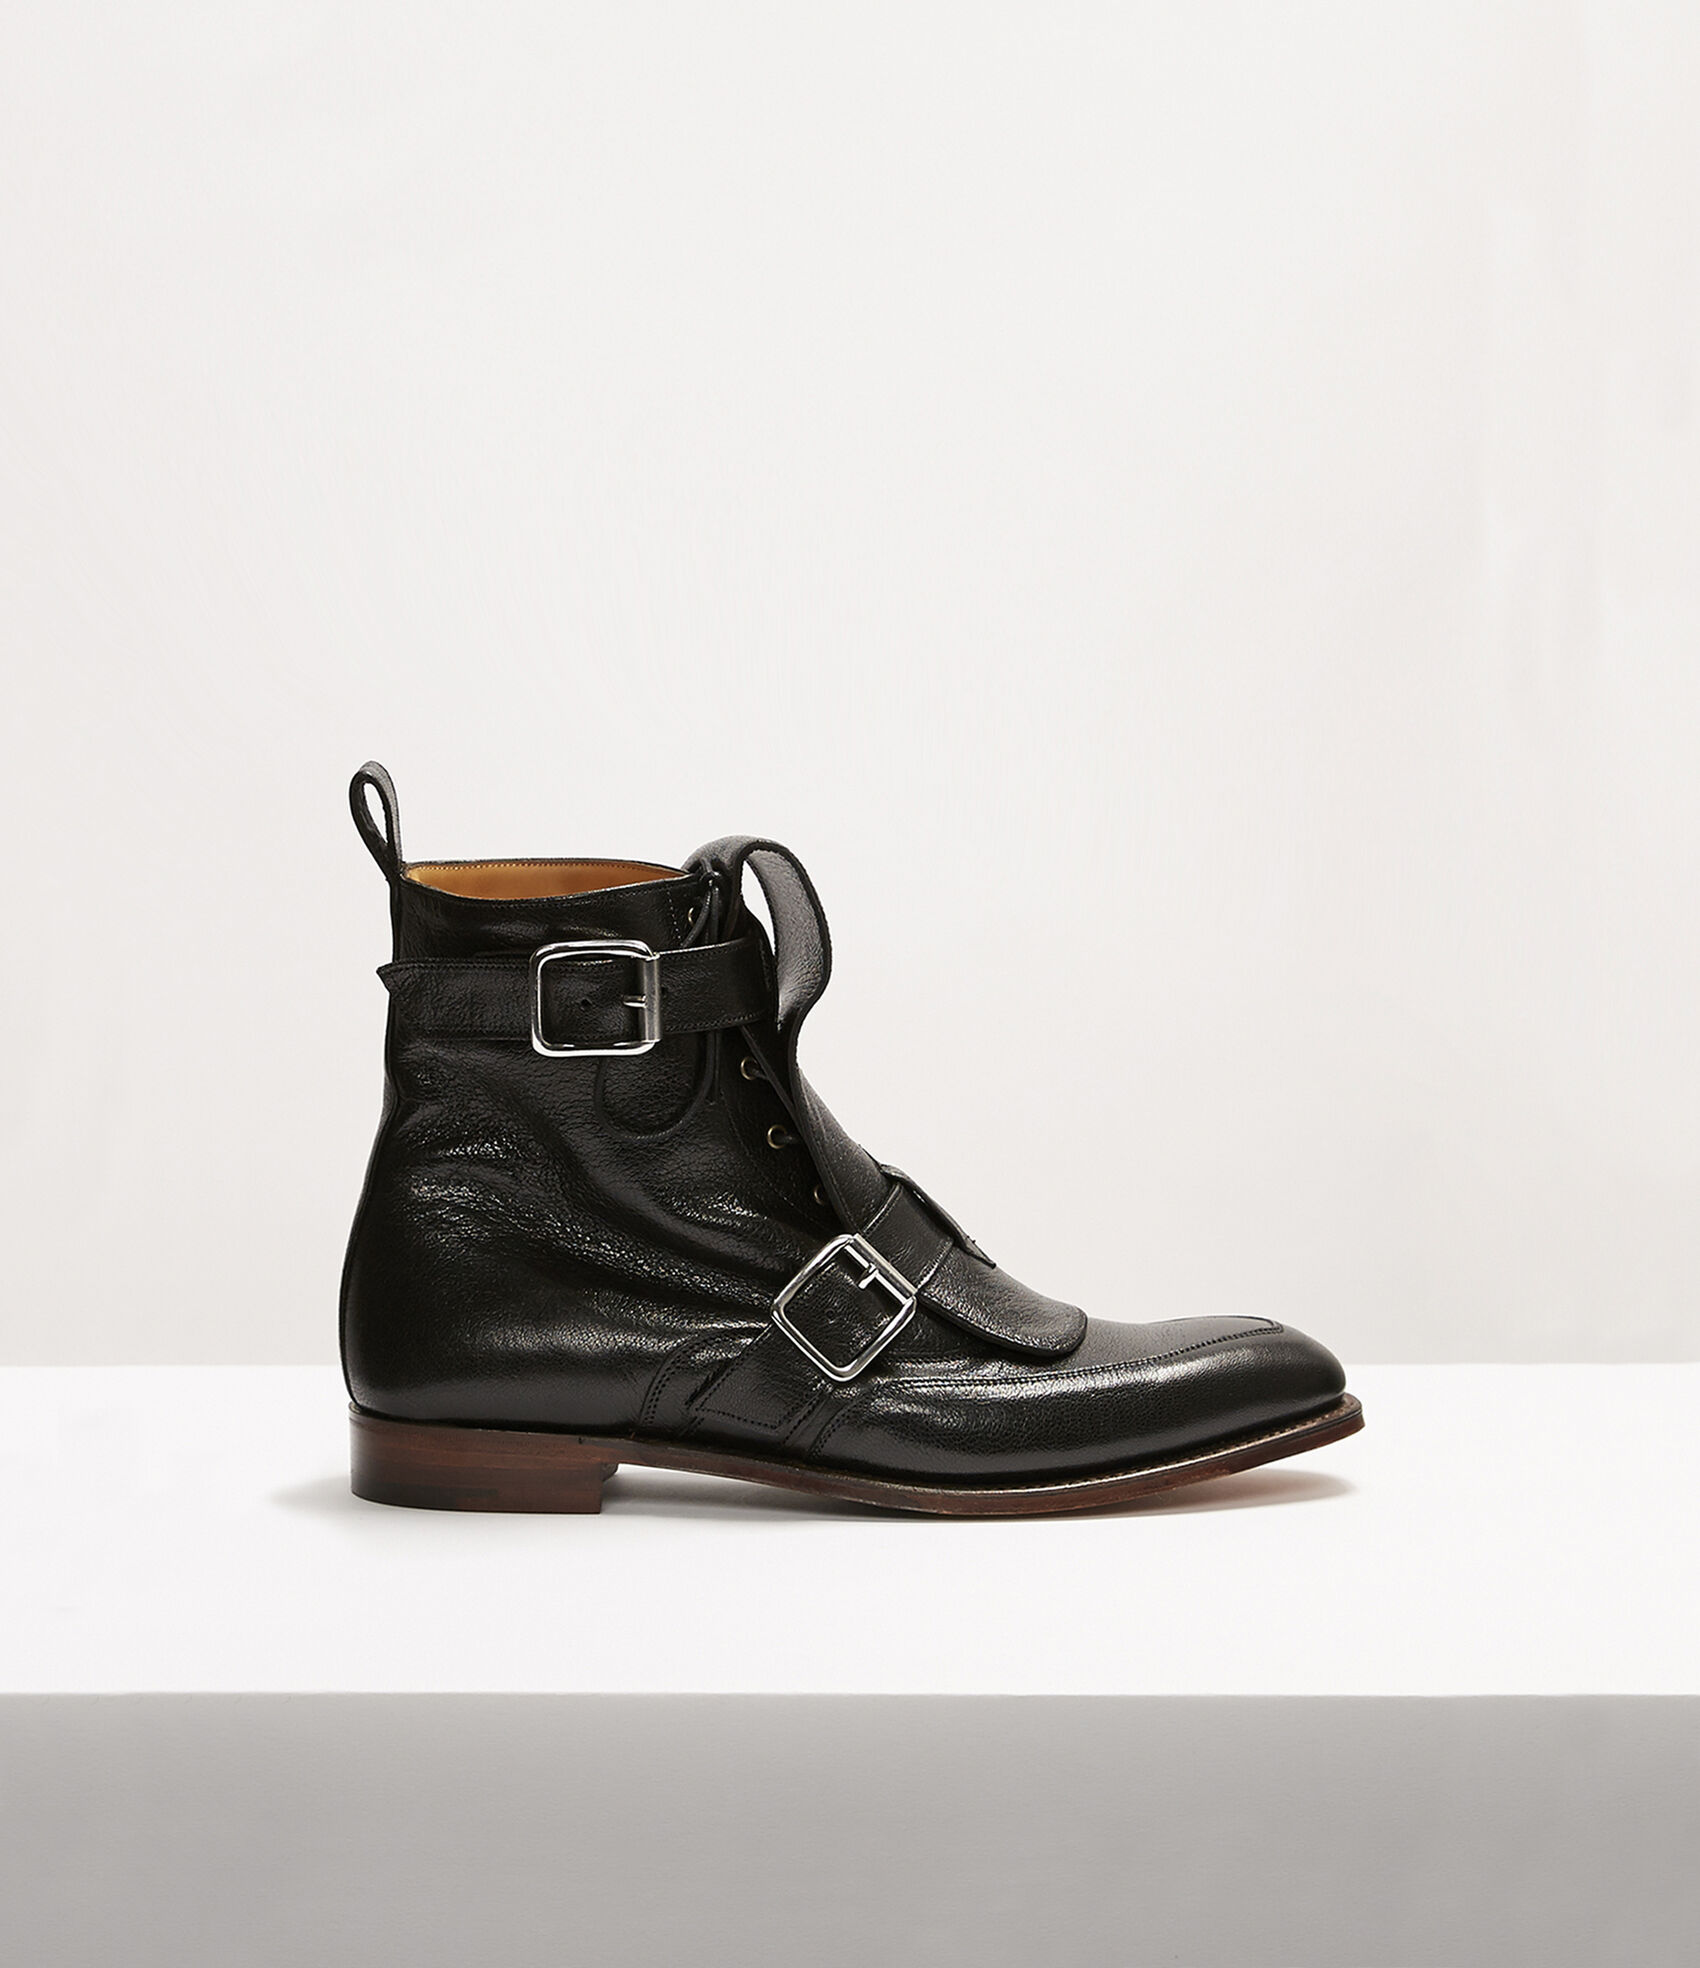 Seditionary Punk Boot in Black from Vivienne Westwood